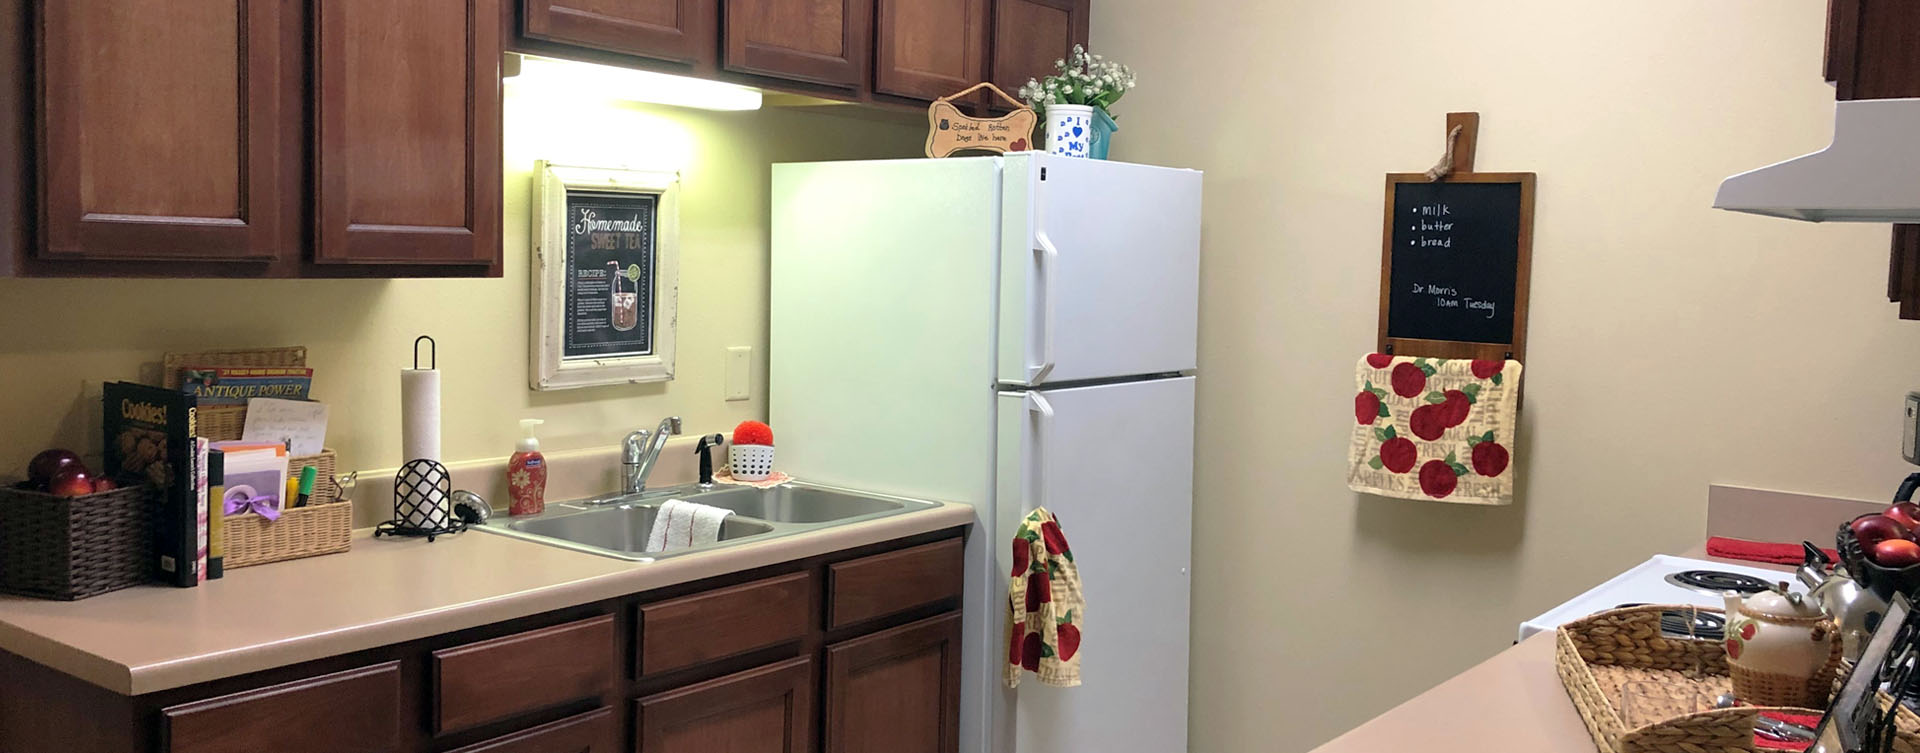 Get a new lease on life with a cozy apartment at Bickford of Bourbonnais